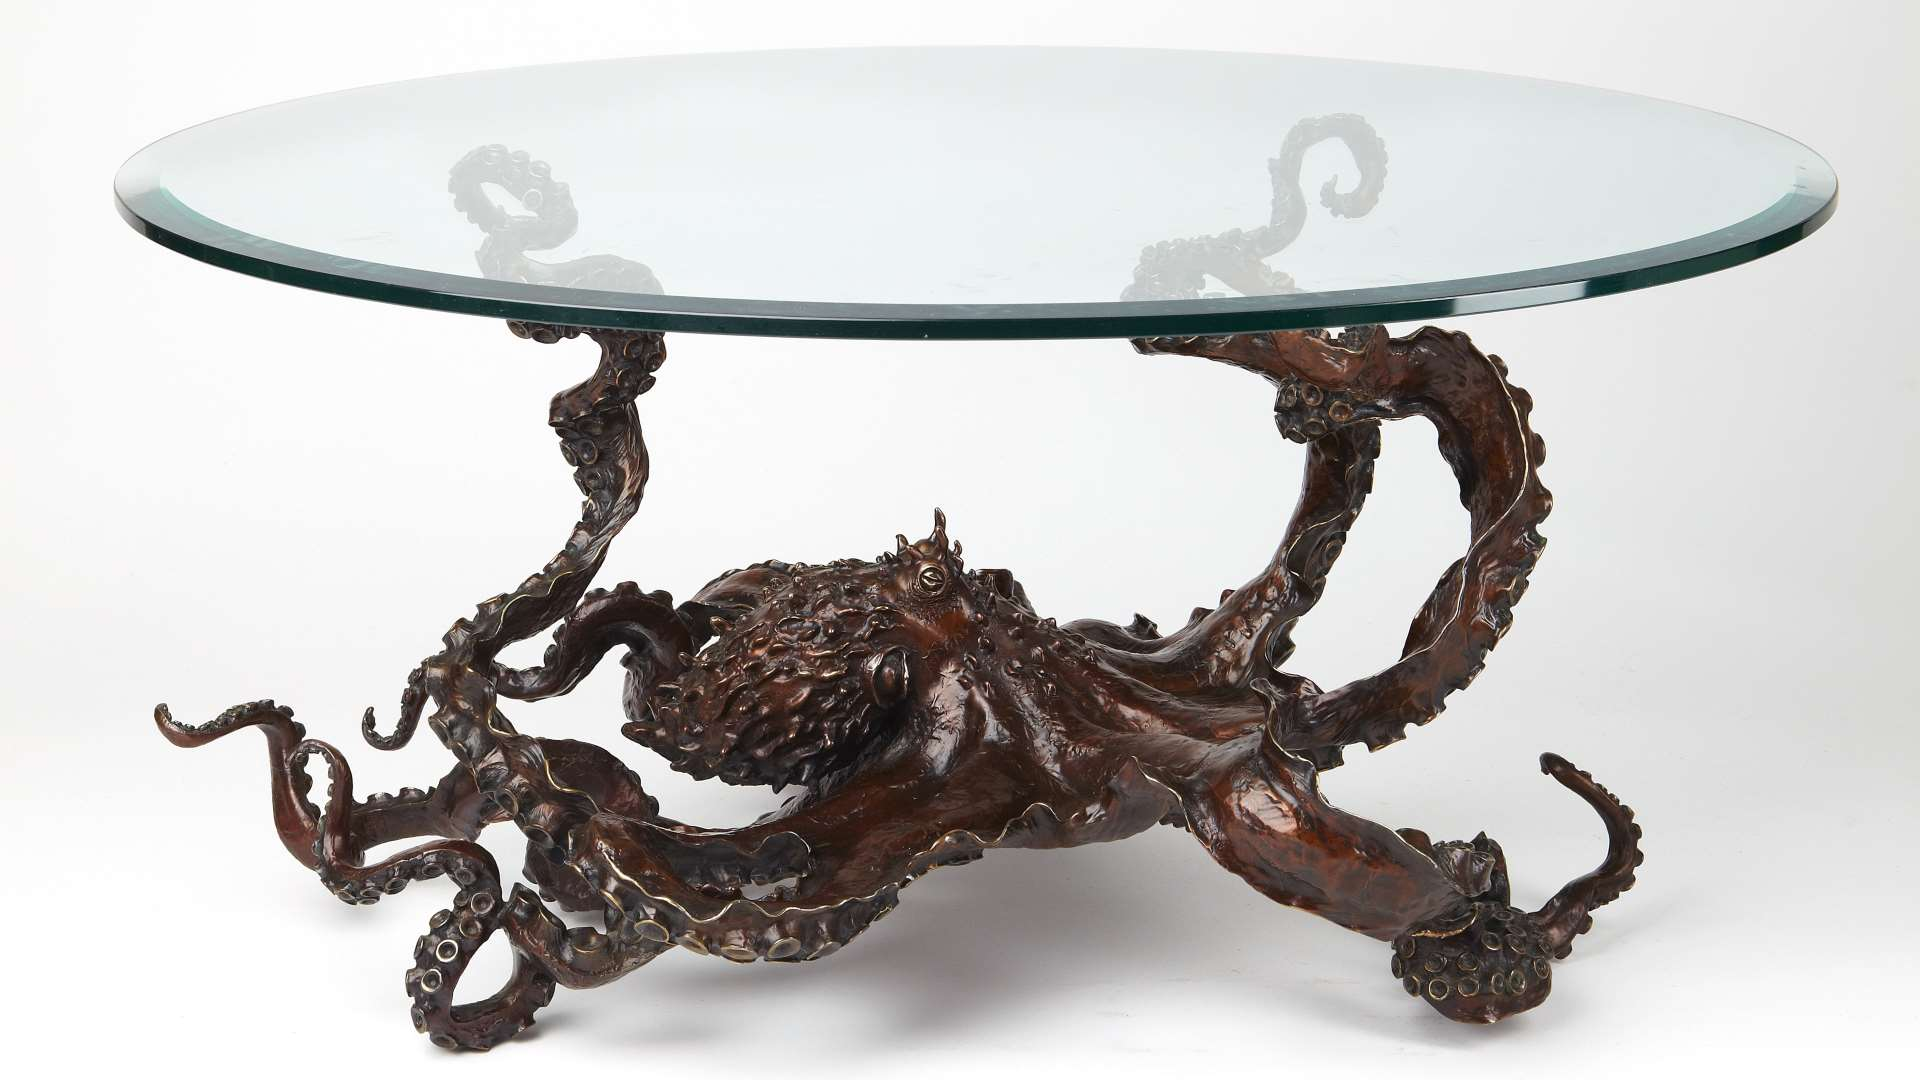 luxury furniture by Kirk McGuire a bronze octopus glass table